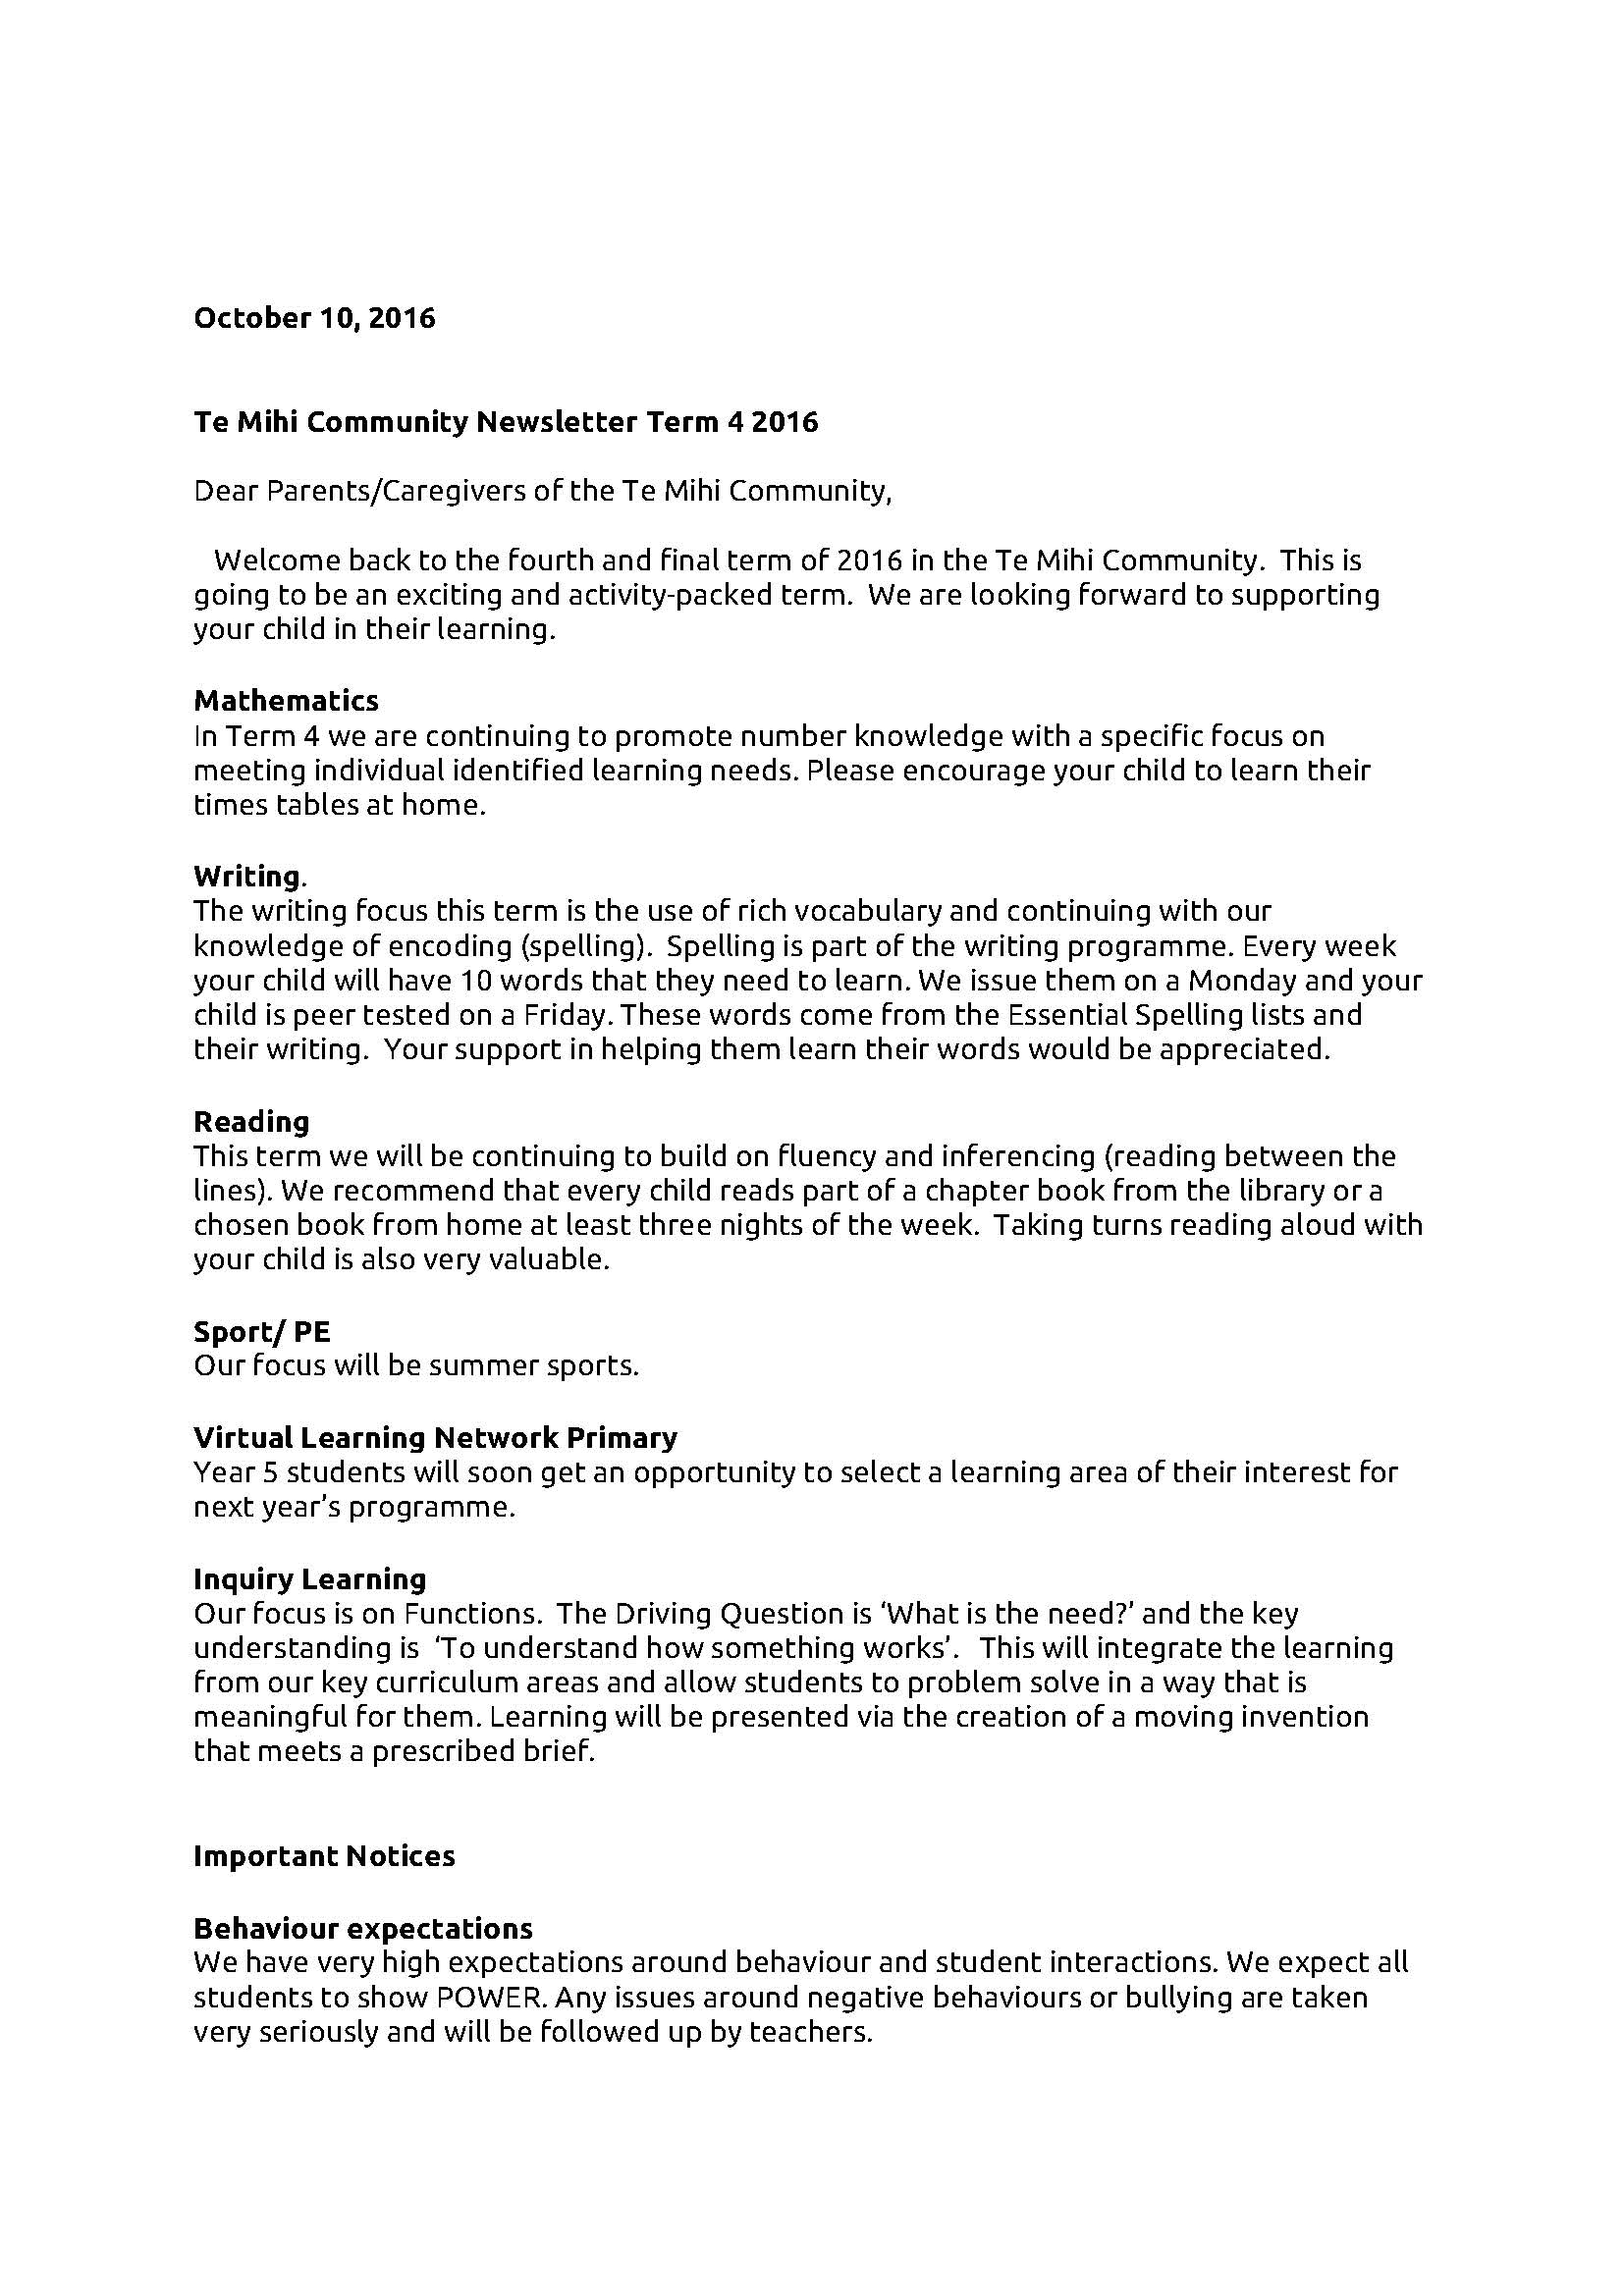 Te Mihi Learning Community Term 4 Letter